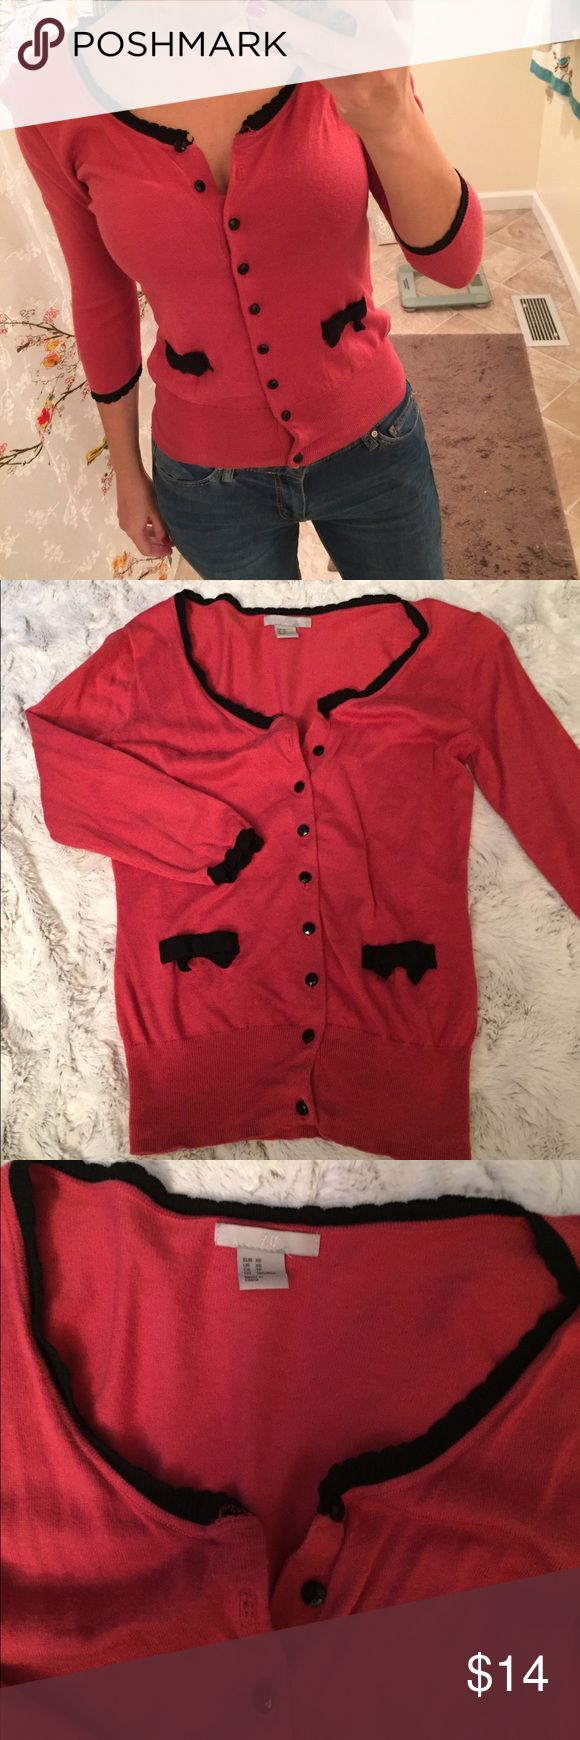 """H&M bright coral cardigan H&M dark coral cardigan with cute black piping details. Size XS, runs a bit small. For reference, I am 5'2"""" and 110lbs. H&M Sweaters Cardigans"""